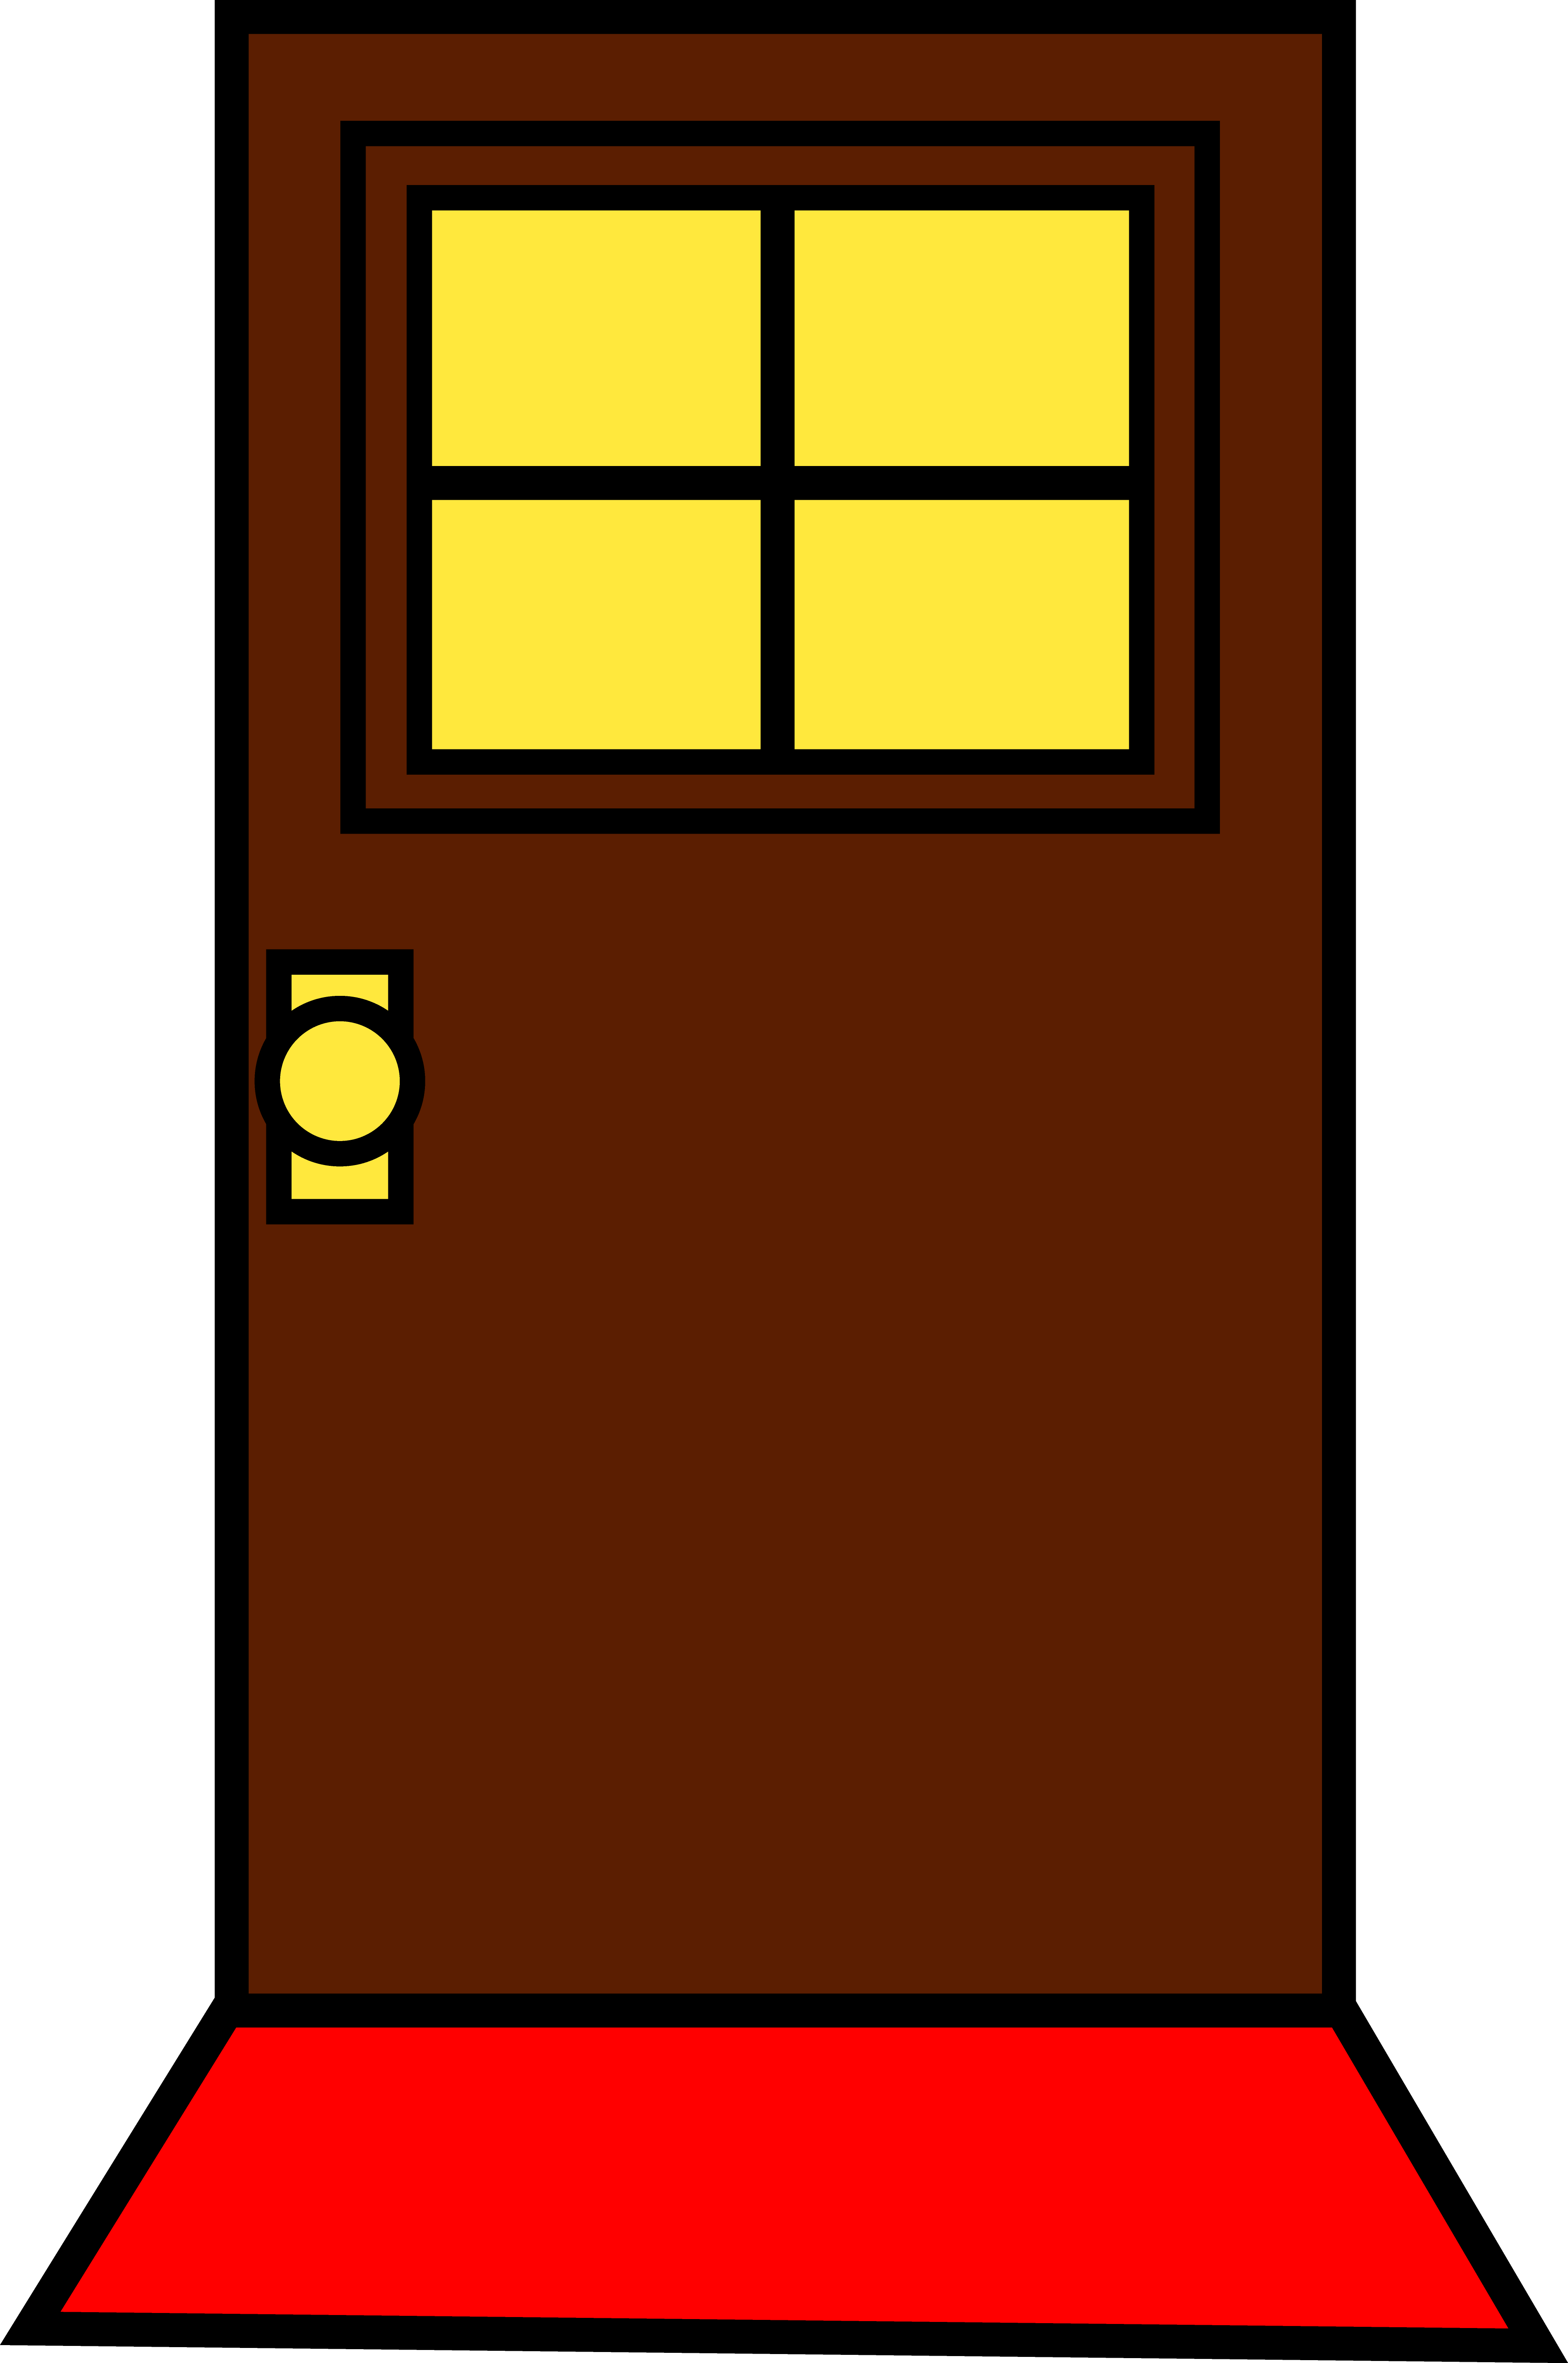 House door clipart graphic transparent library Front Door Clipart Image Group (75+) graphic transparent library